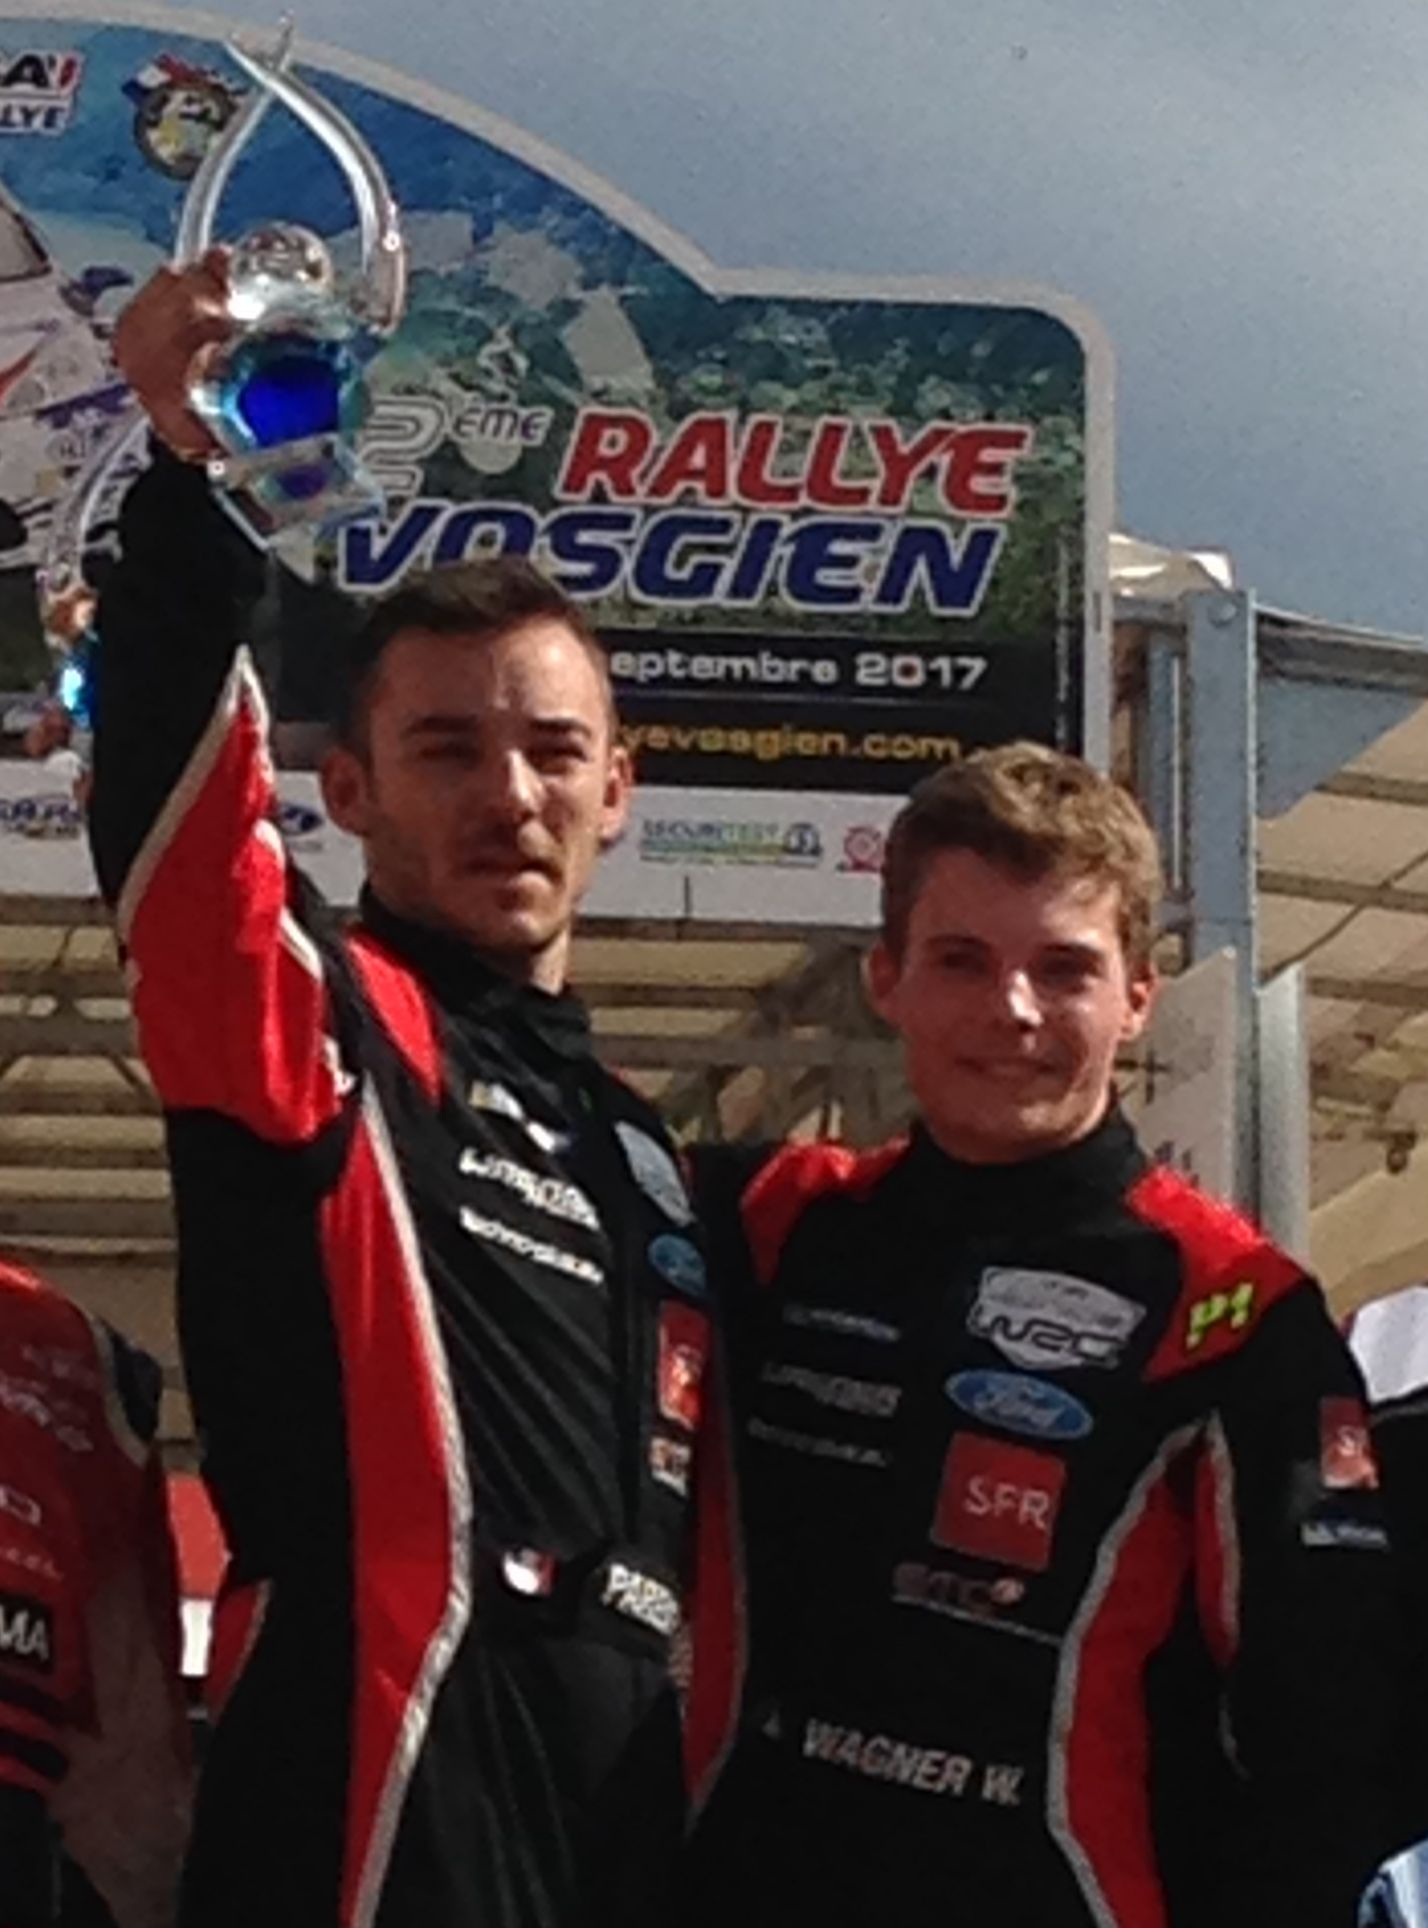 Rallye Vosgien : William Wagner en patron